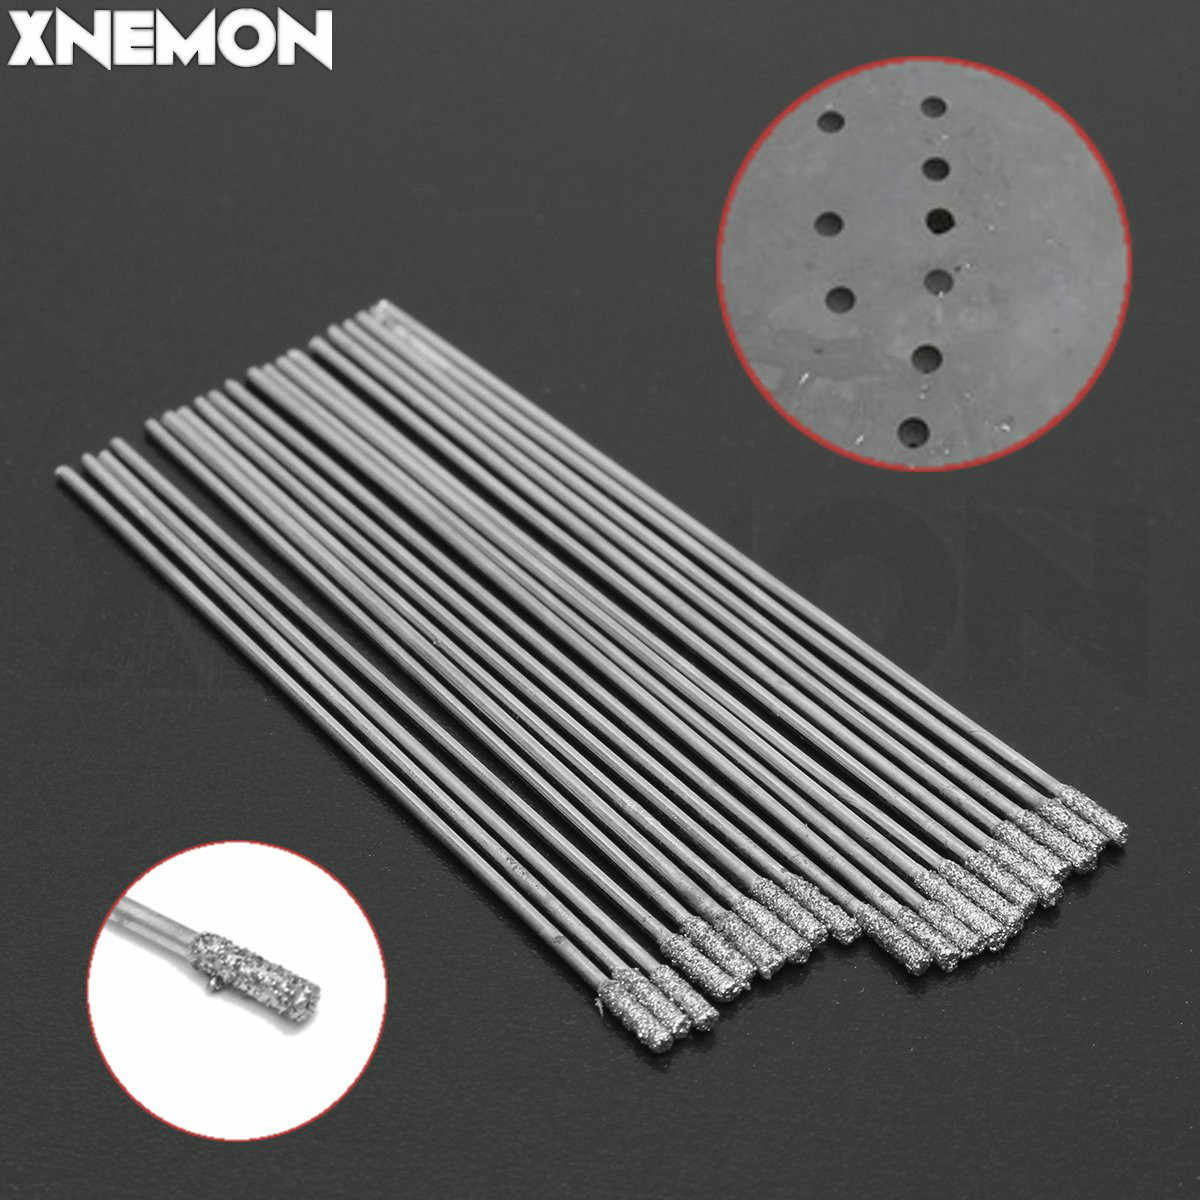 XNEMON 20pcs 1.5MM Diamond Coated Tipped SOLID BITS Drill Drills Bit Hole Saw Hole on Glass, Marble, Tile or Granite Carborundum